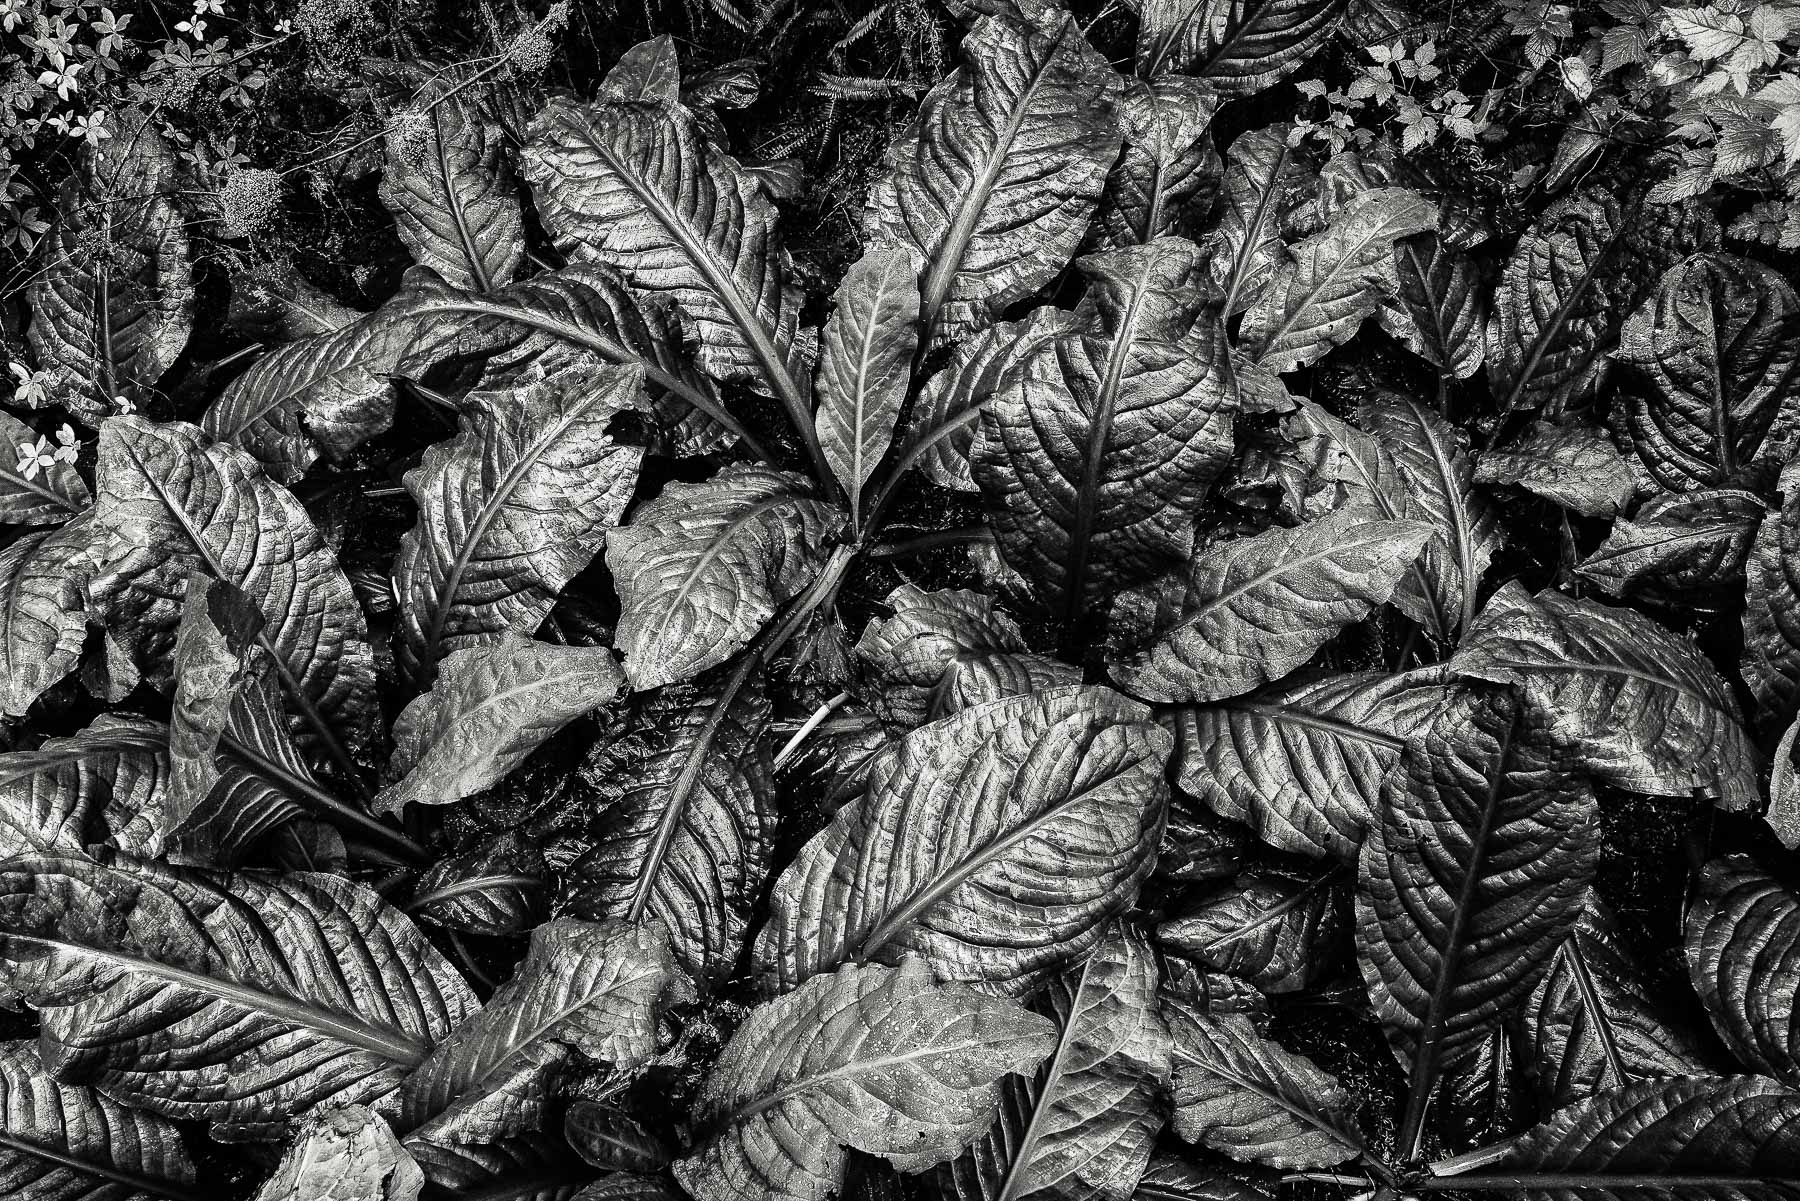 leaves, rainforest, Canada, British Columbia, Vancouver Island,